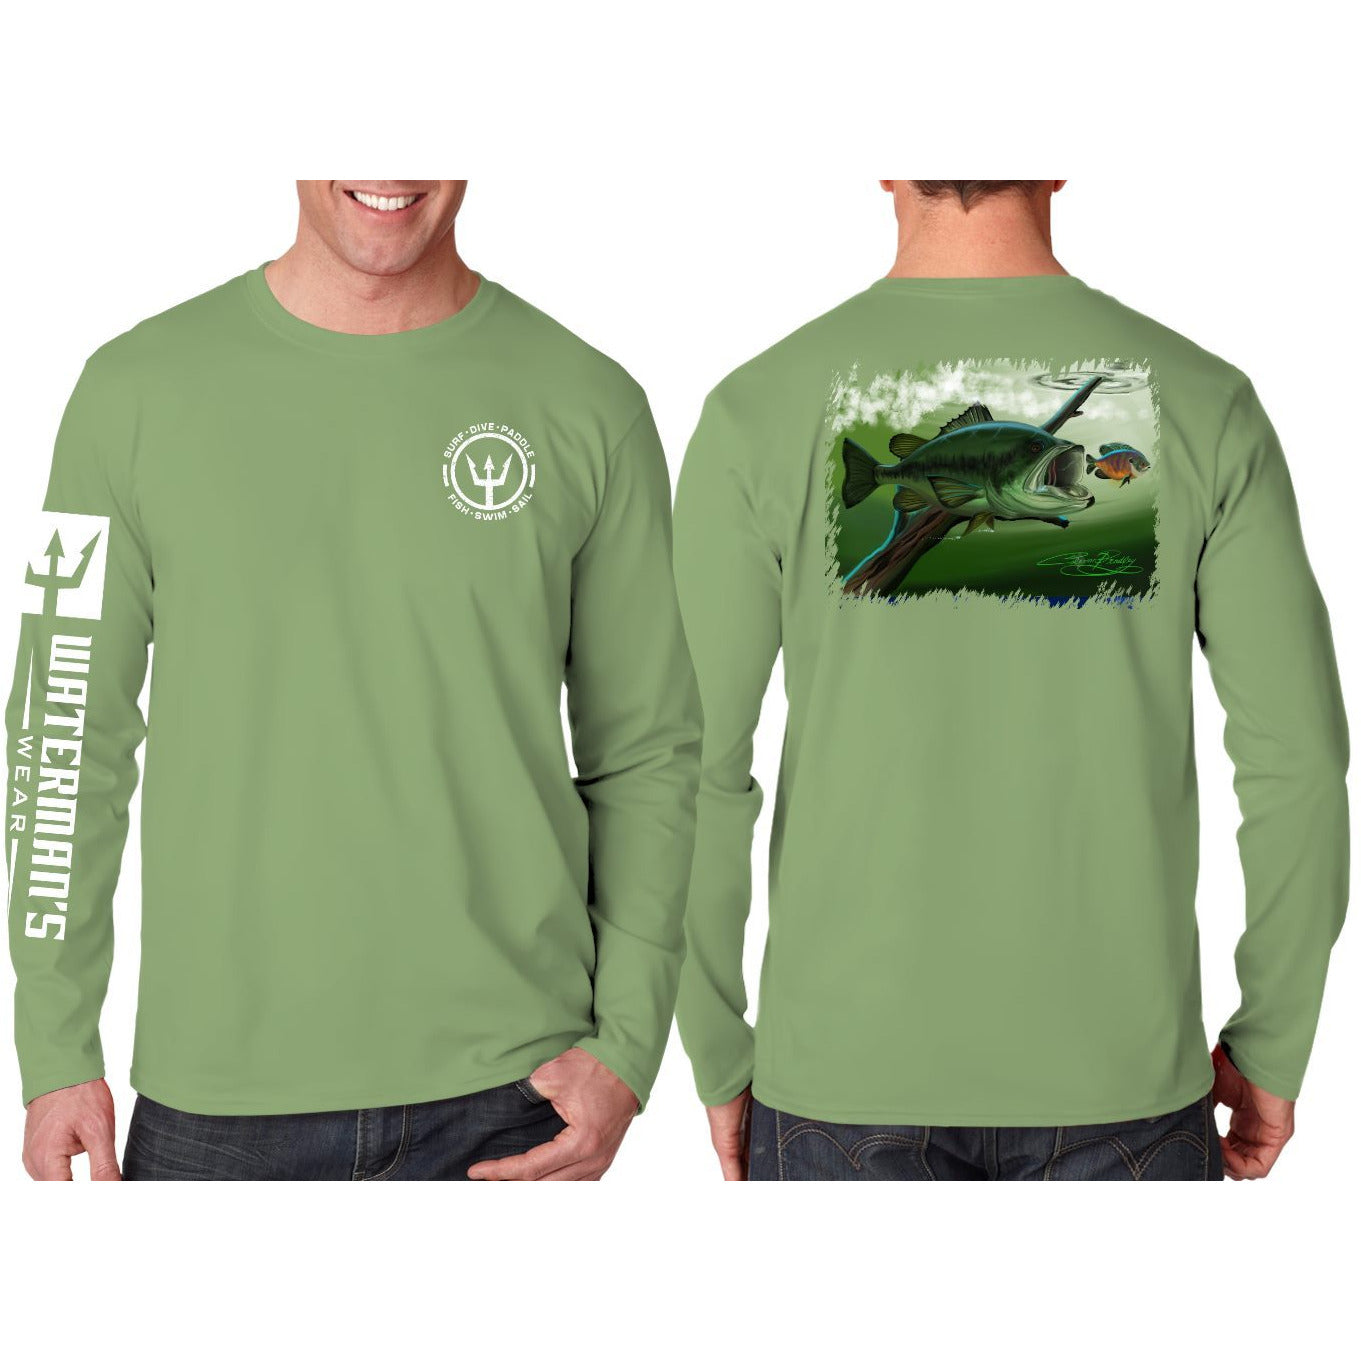 Waterman's Wear Hungry Large Mouth Bass UPF50  Long Sleeve Fishing Shirt by Coleman Bradley - Green